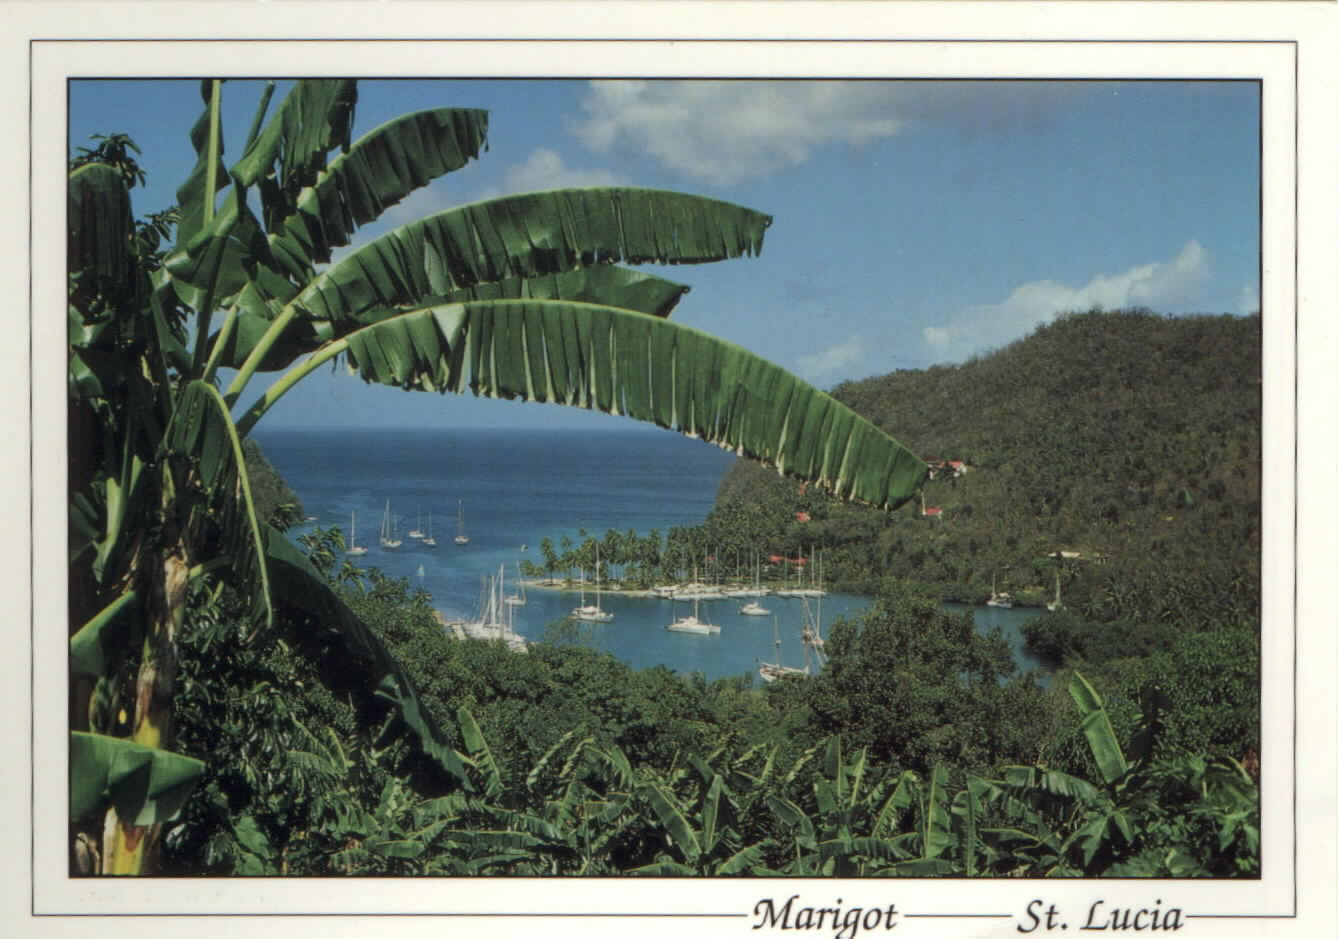 A picture postcard view of stunning Marigot Bay